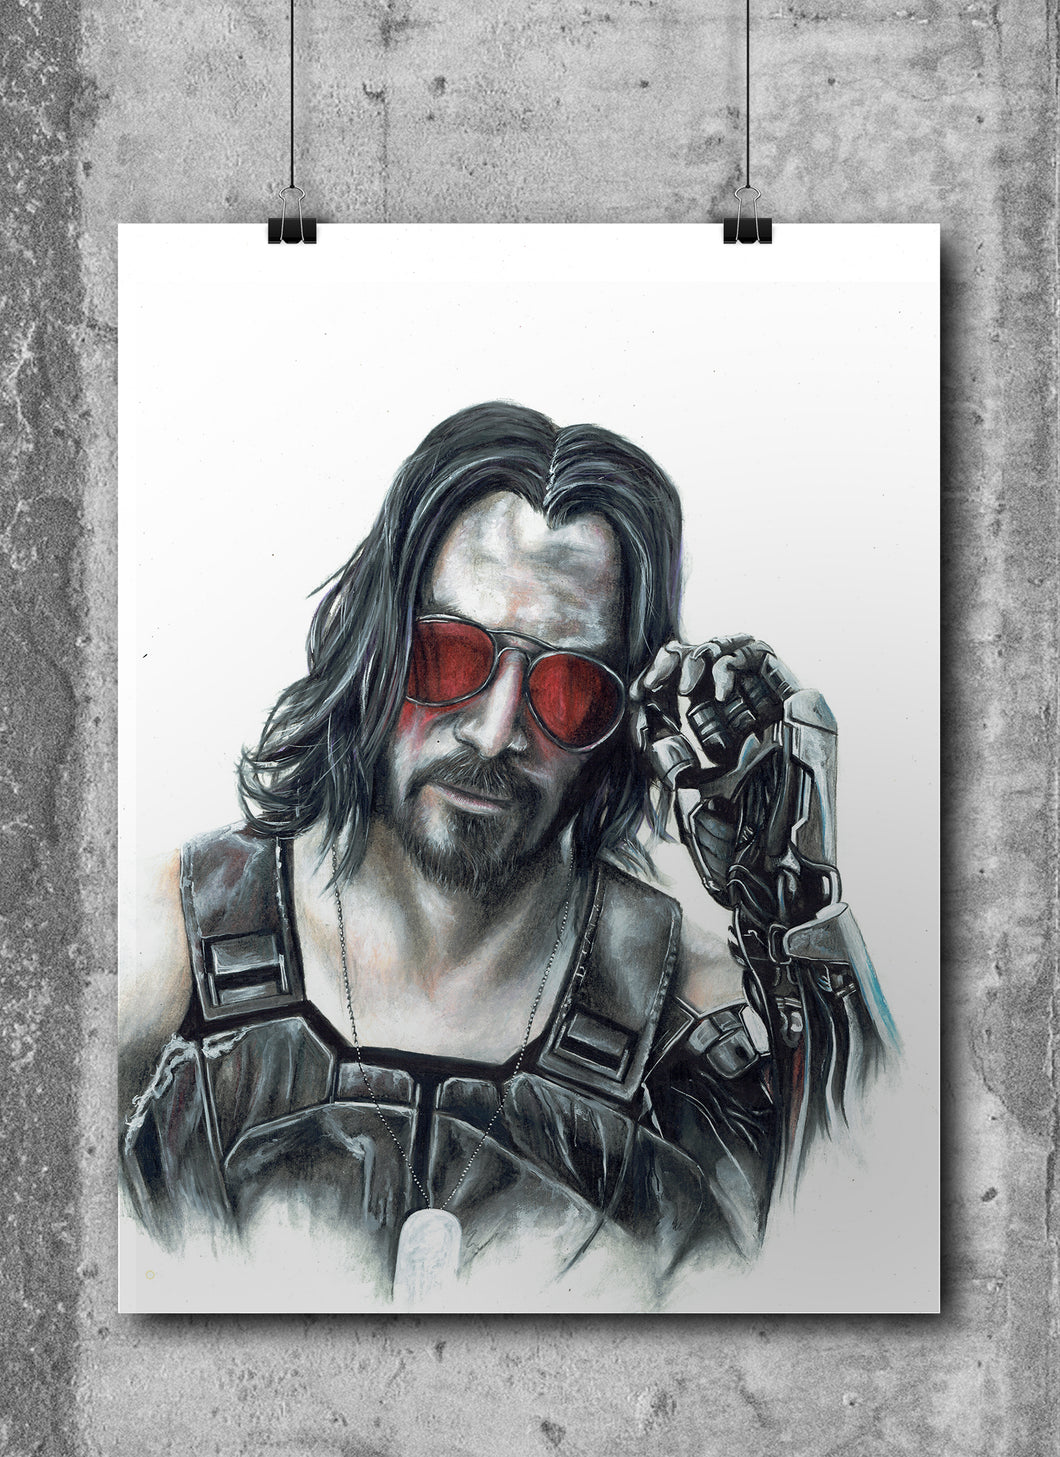 CyberPunk 2077/Limited Edition/Hand Drawing by Wil Shrike